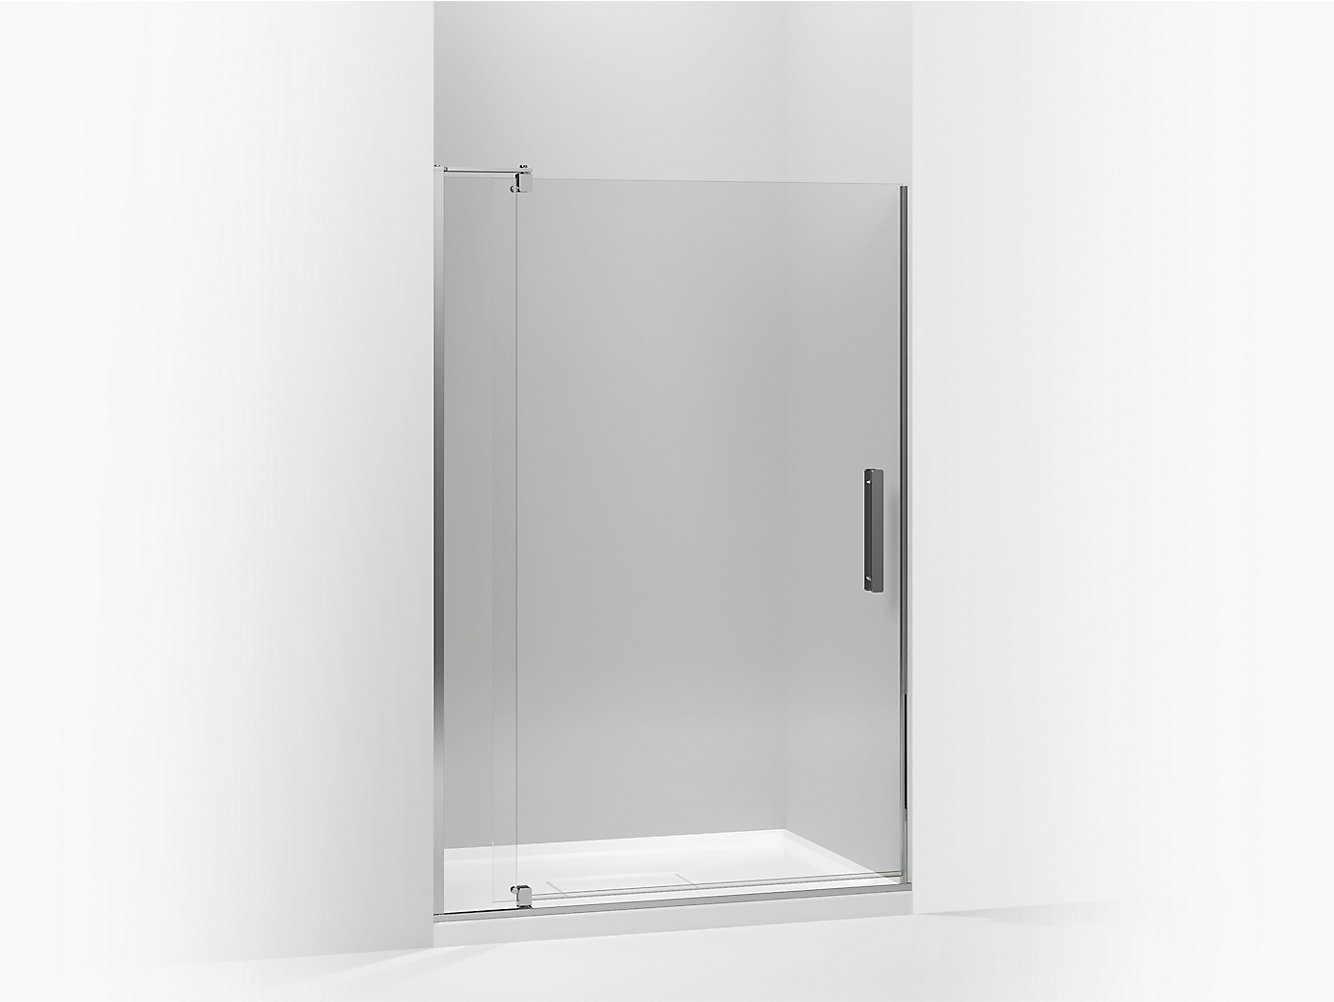 K-707556-L | Revel Frameless Pivot Shower Door | KOHLER